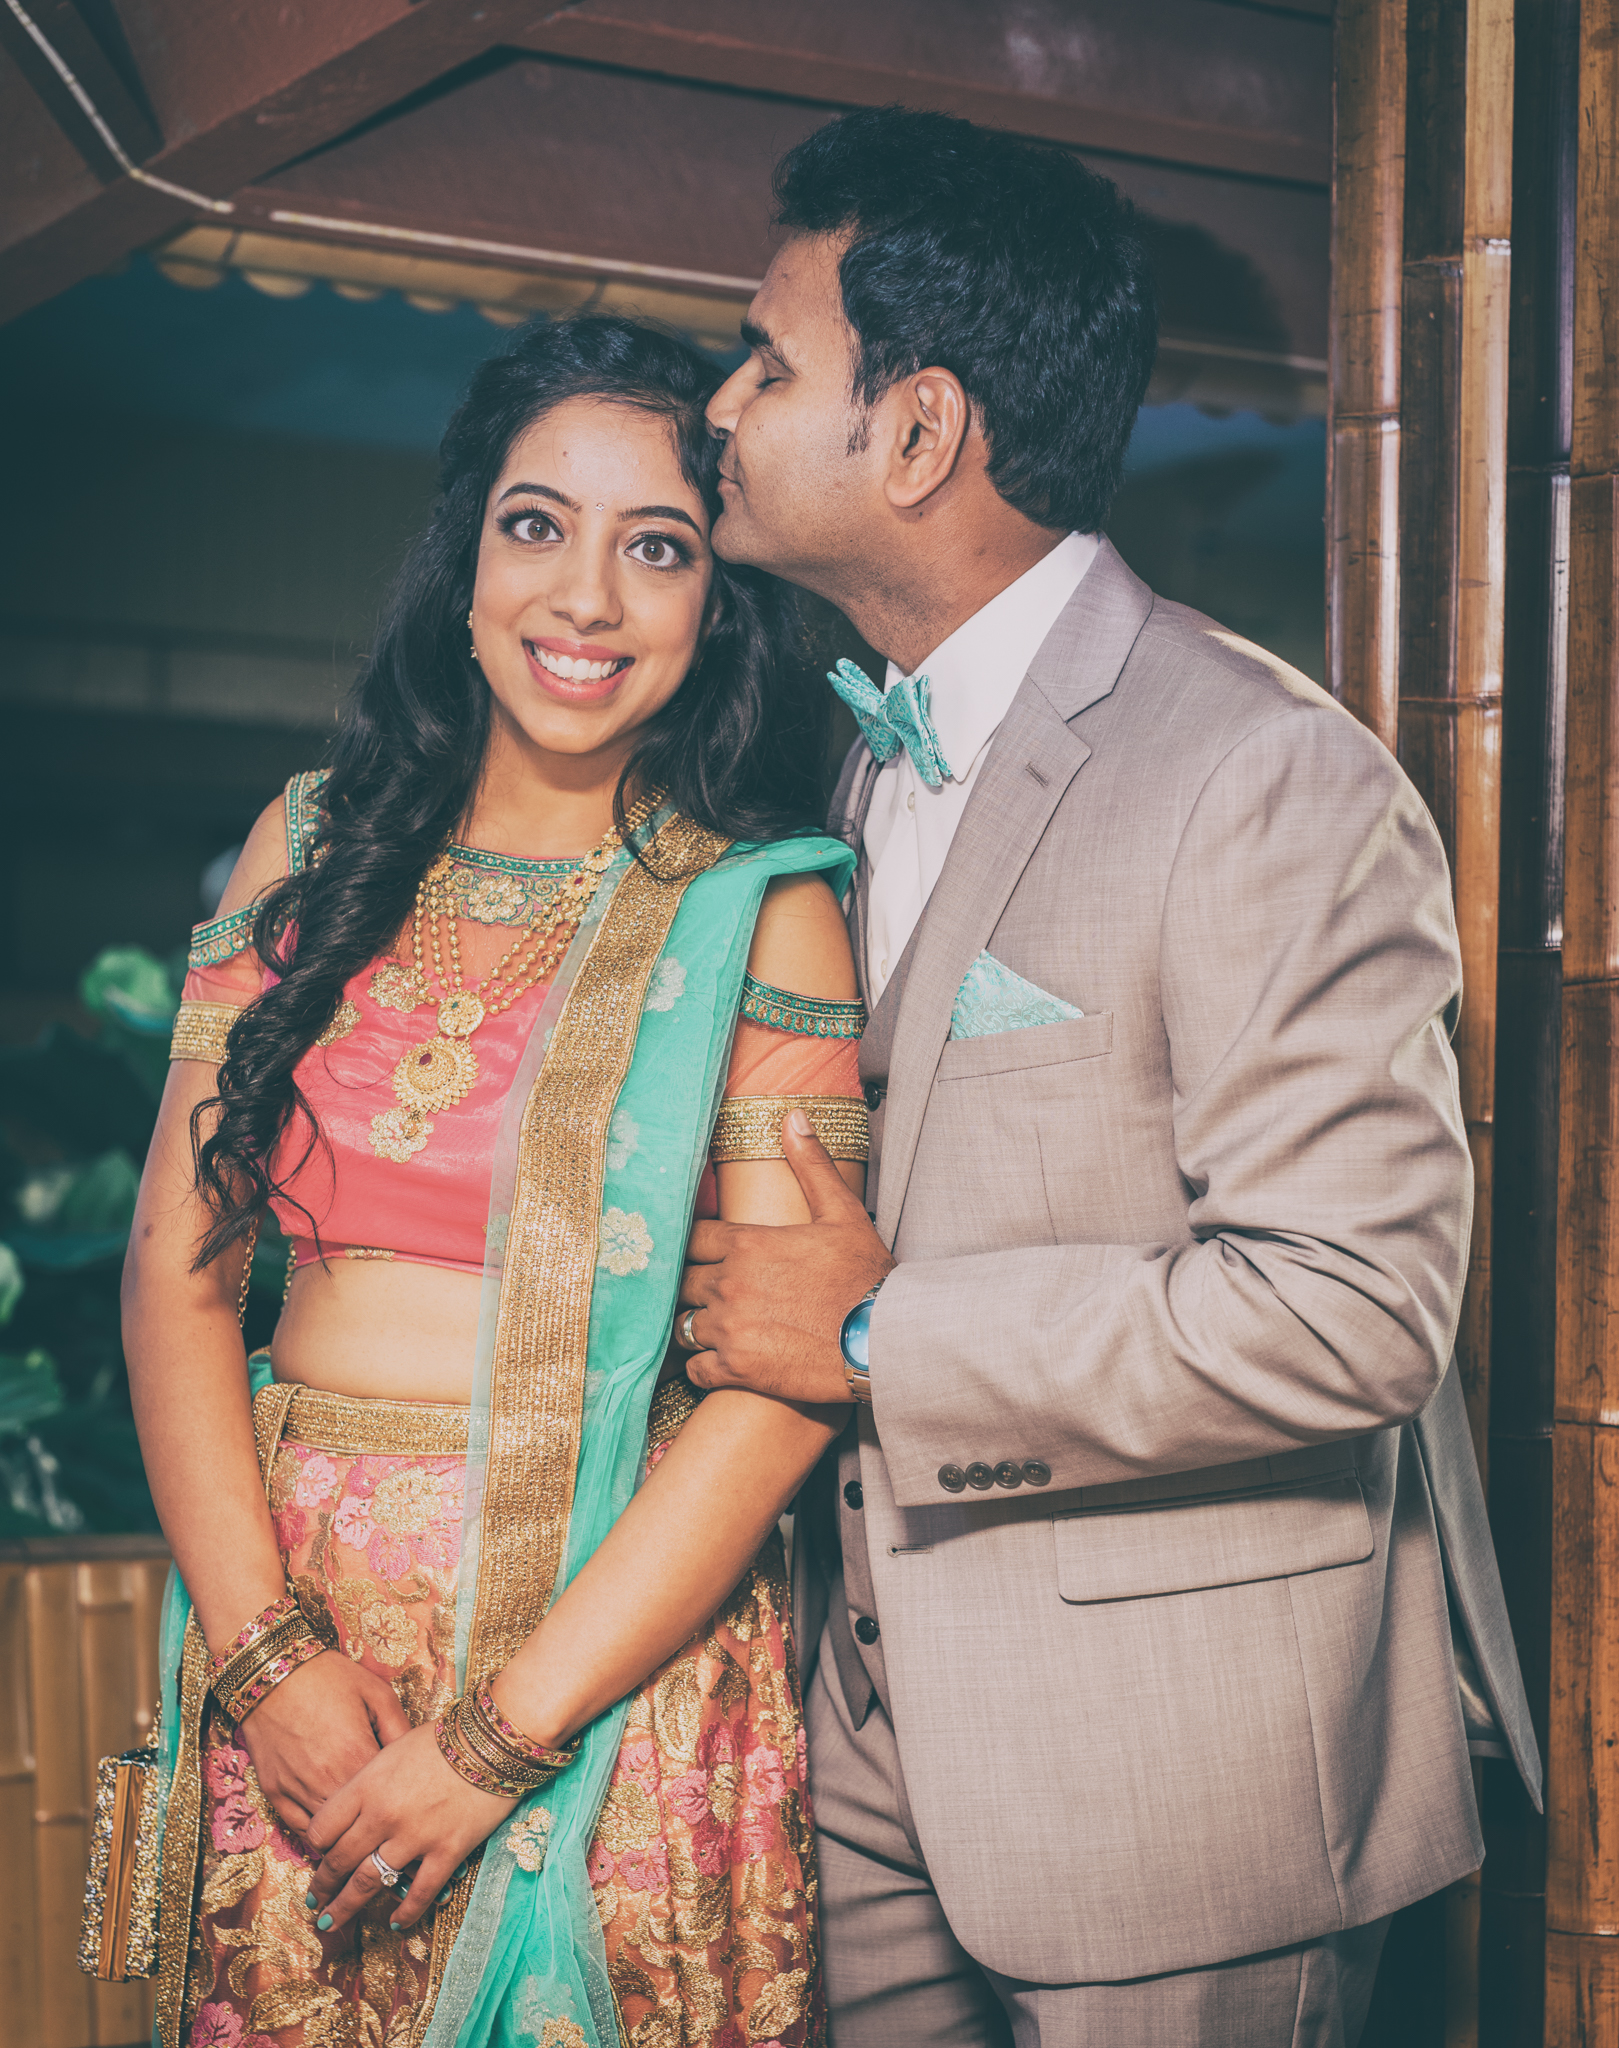 RECEPTION BY DARS PHOTOGRAPHY